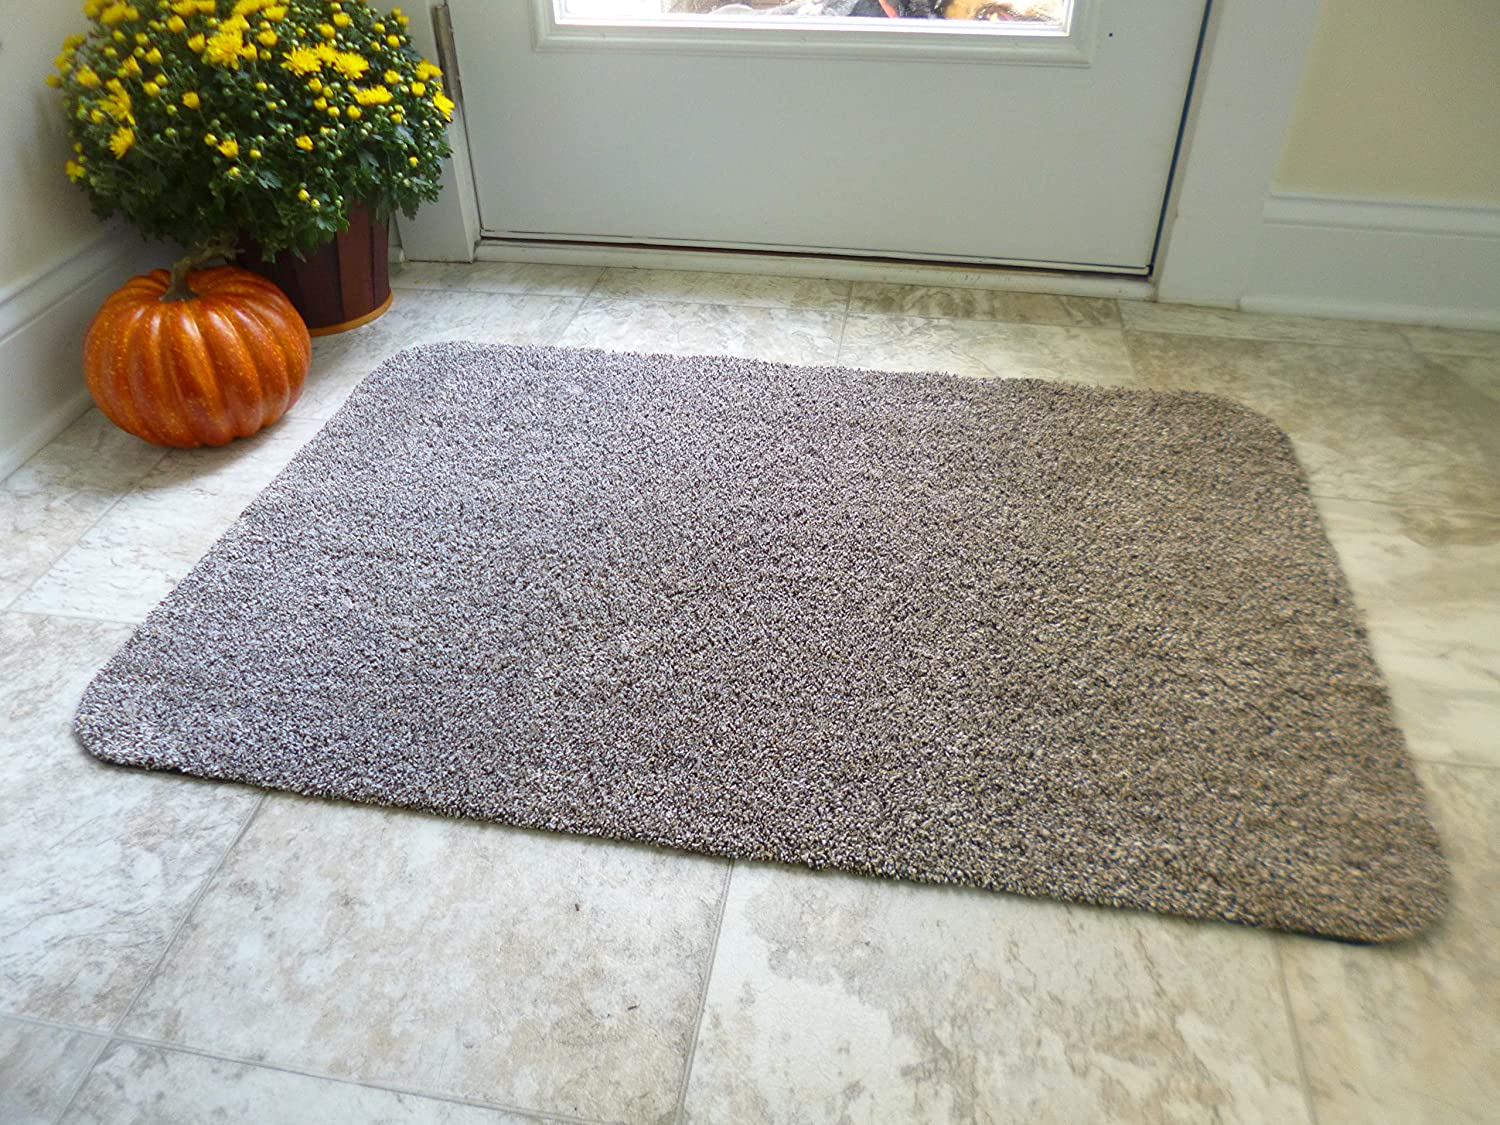 Optimal Home Doormat Indoor, Foyer Entry Mat, Mud Mat, RV Rug, Non Slip Rubber Backed, Traps Dirt, Large 2x3 Low Profile Carpet 24x36,Brown Beige Rug